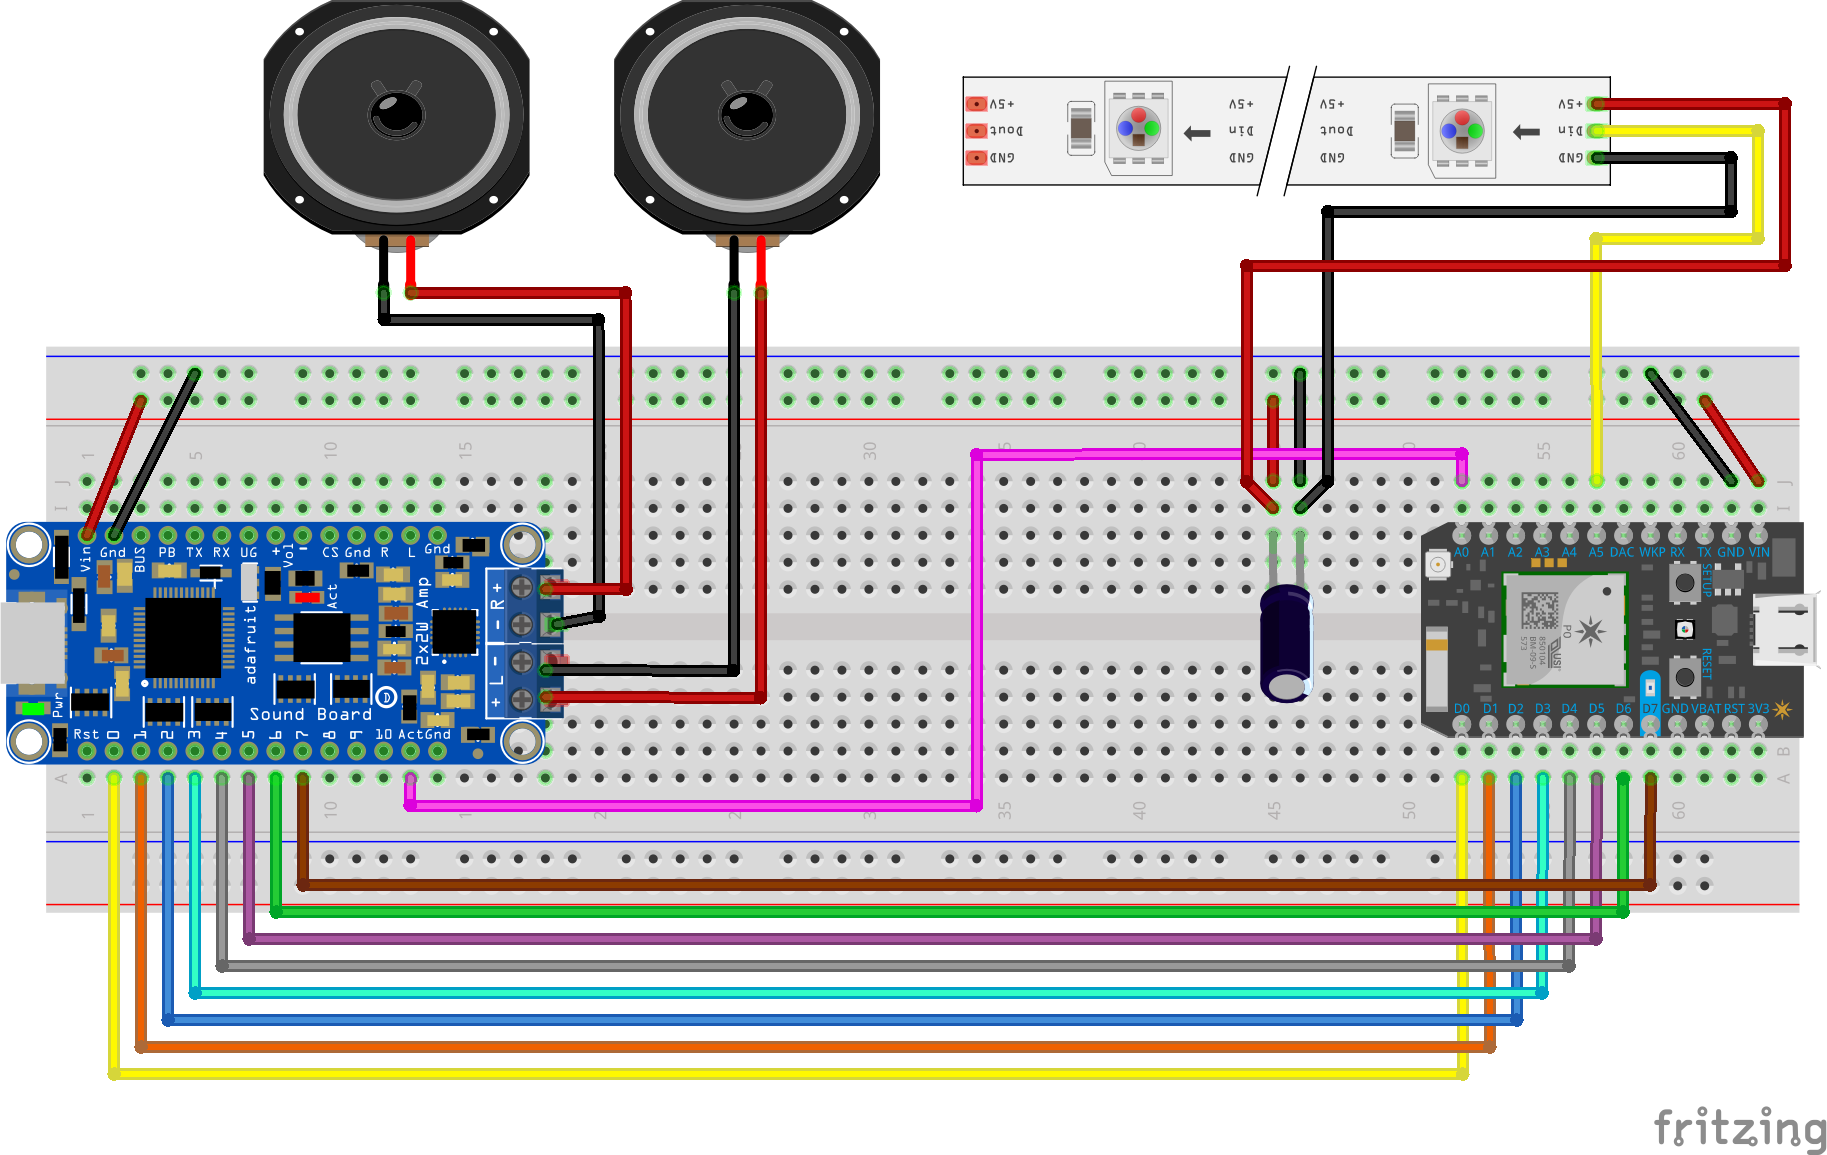 microcontrollers_Photon_and_FX-Amp_bb.png